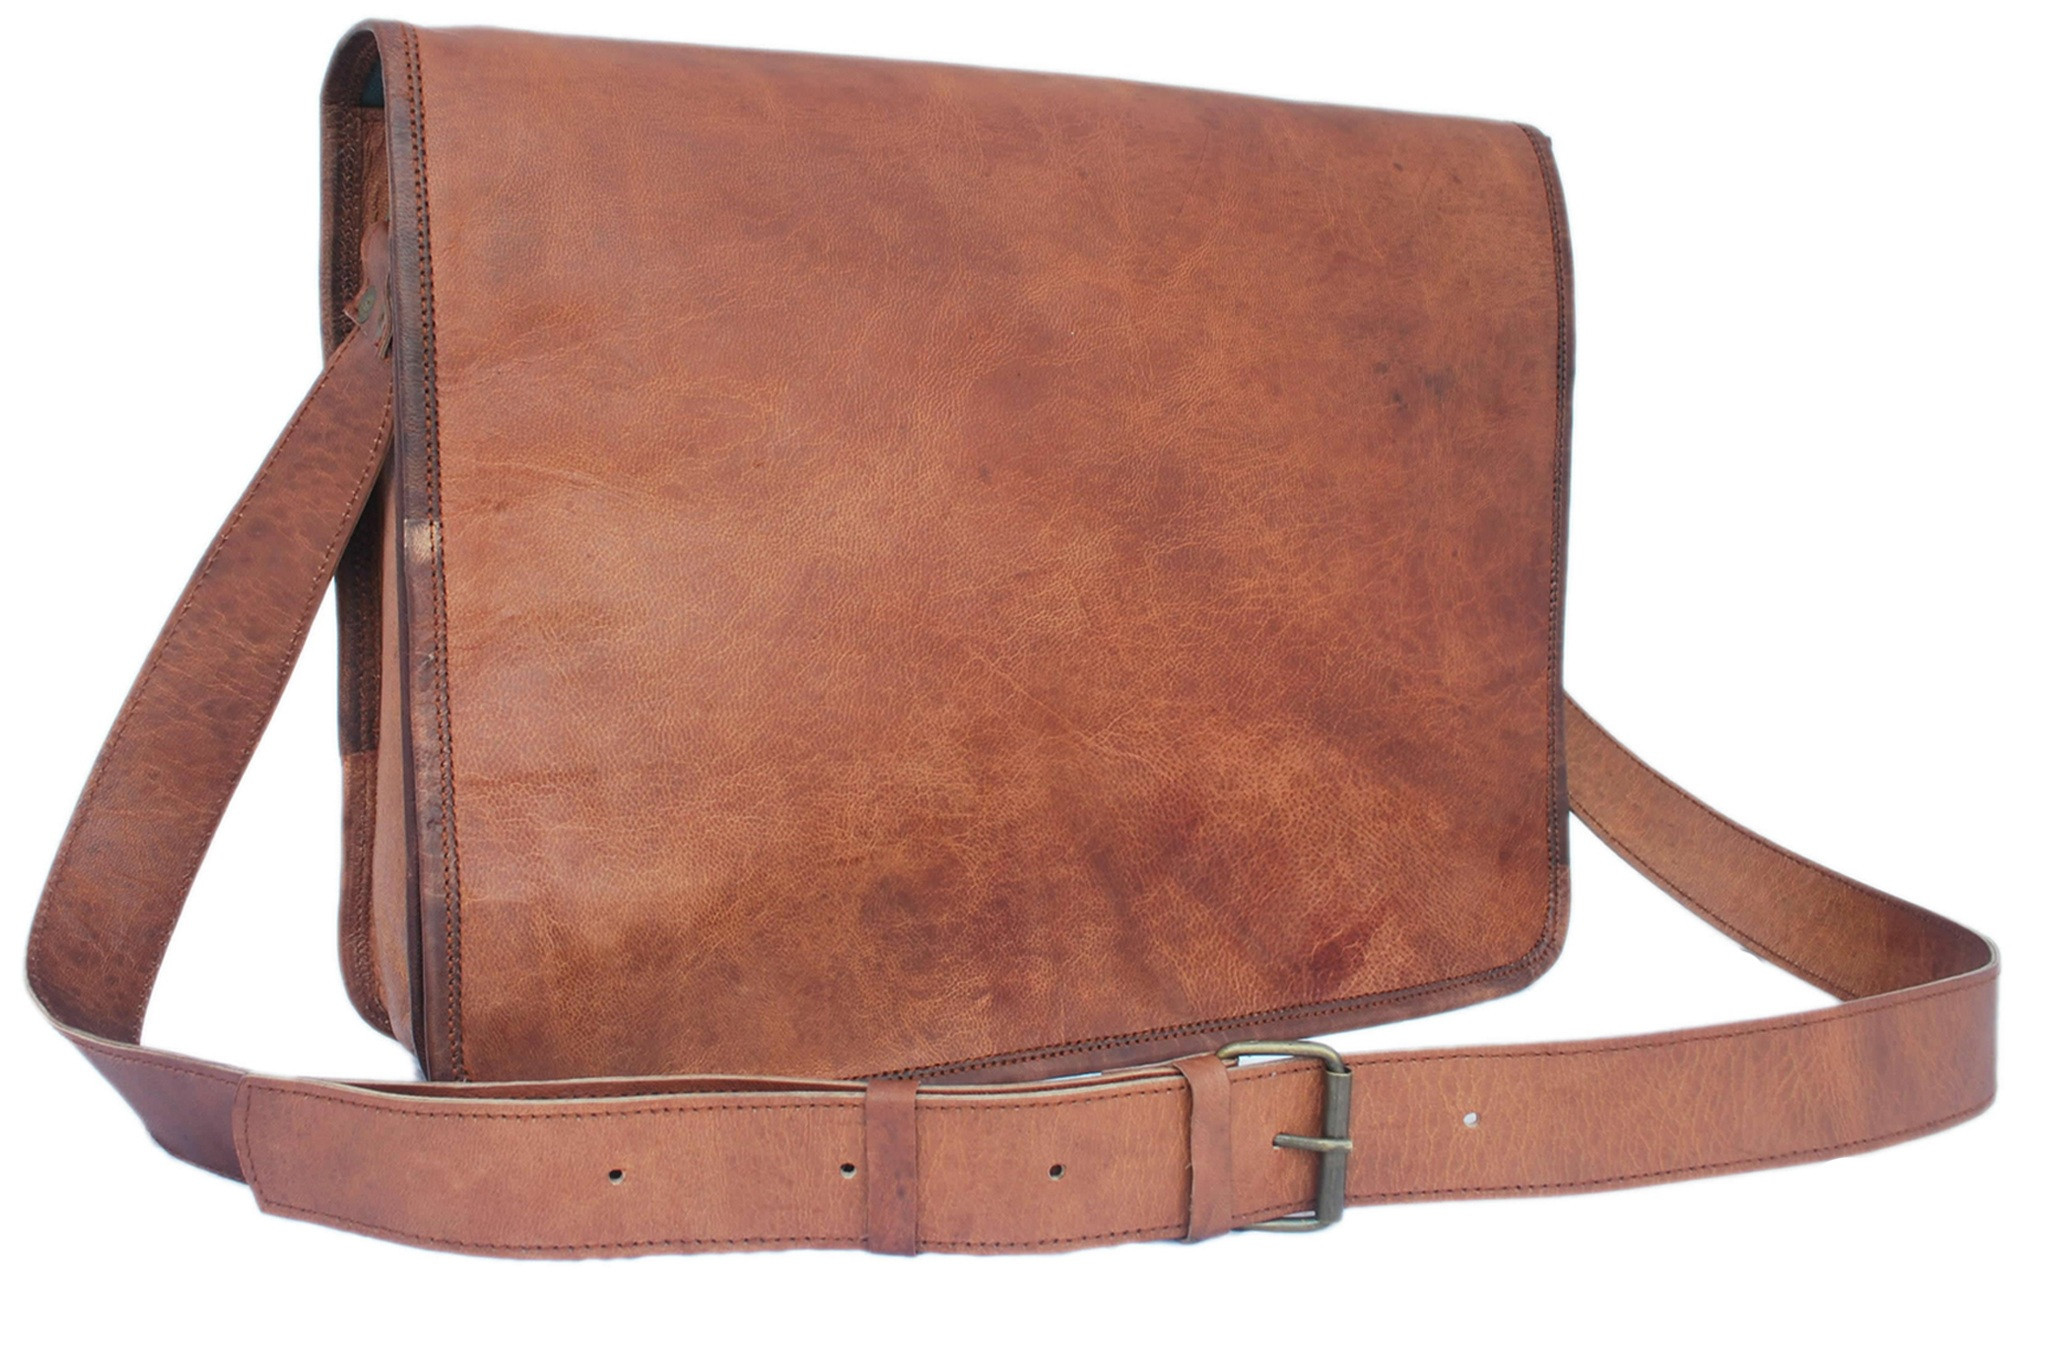 leather bags for men leather bags for mens ... OKSASZC